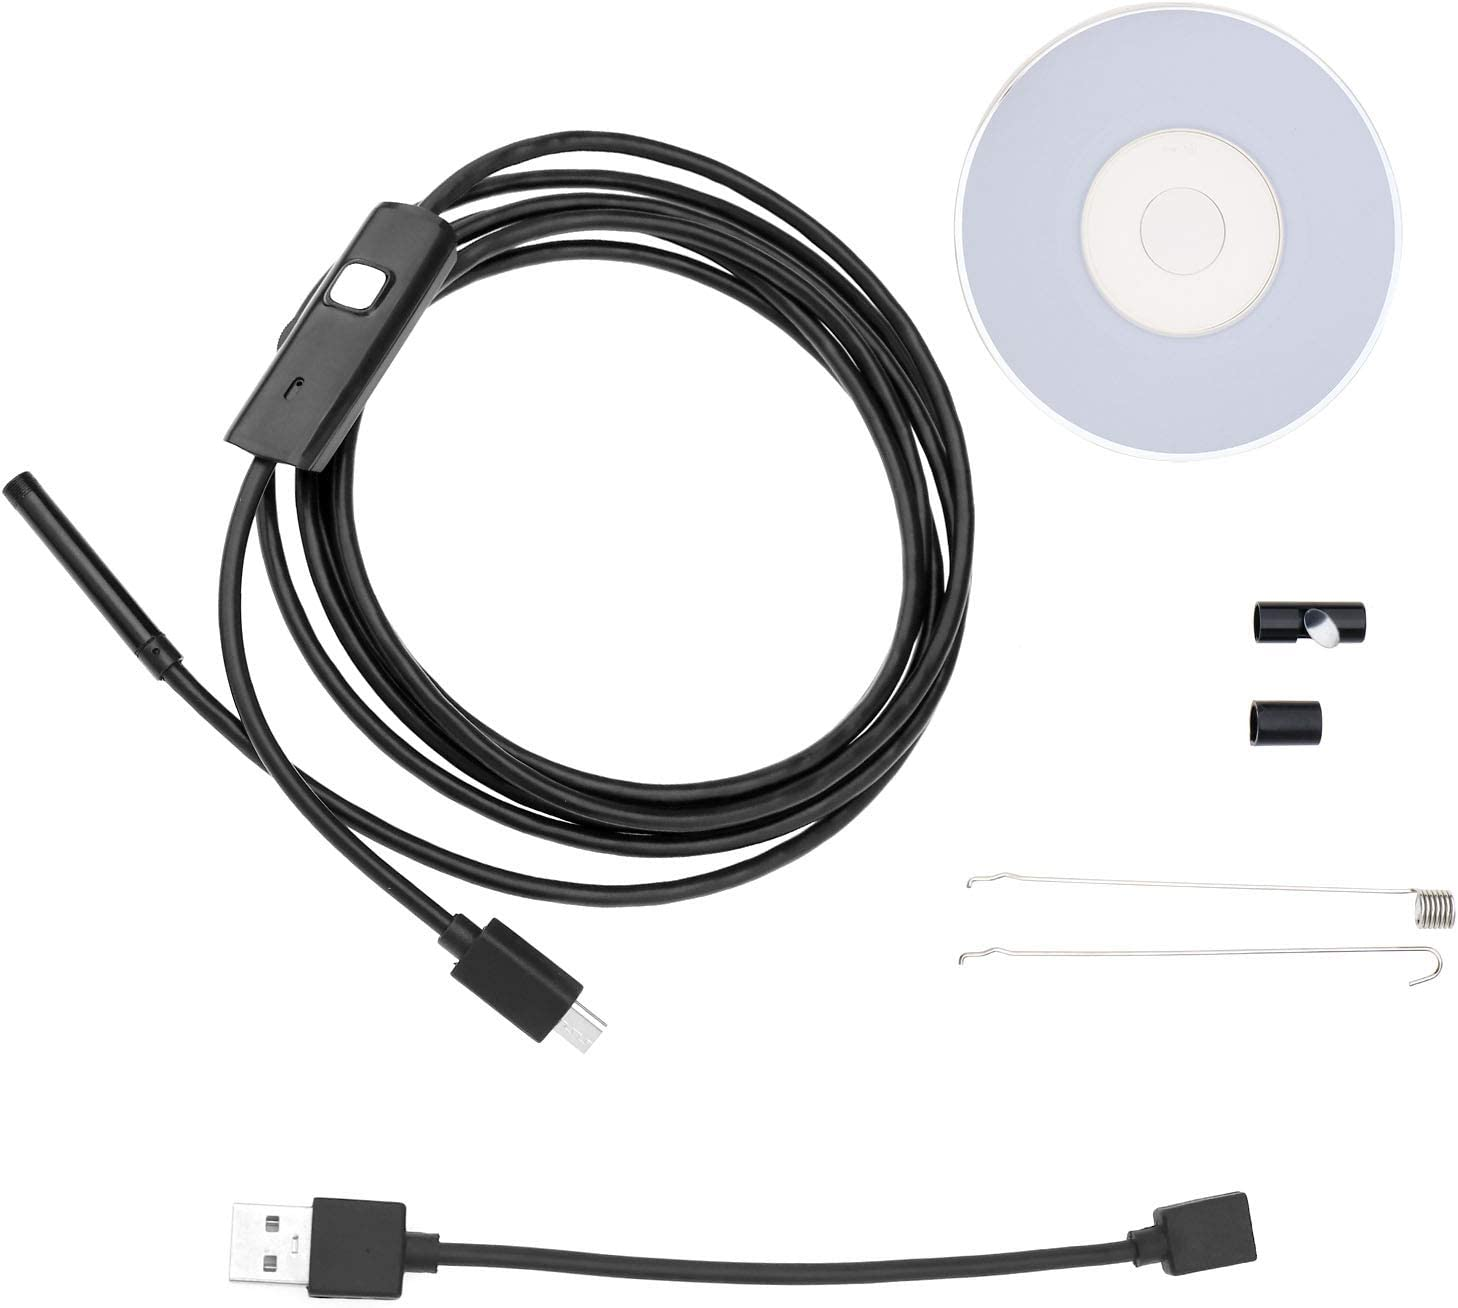 USB Endoskop Inspektion Kamera Borescope Wasserdicht mit 6 LED Leuchten f/ür Android /& Win XP//7//8//9//10 2m